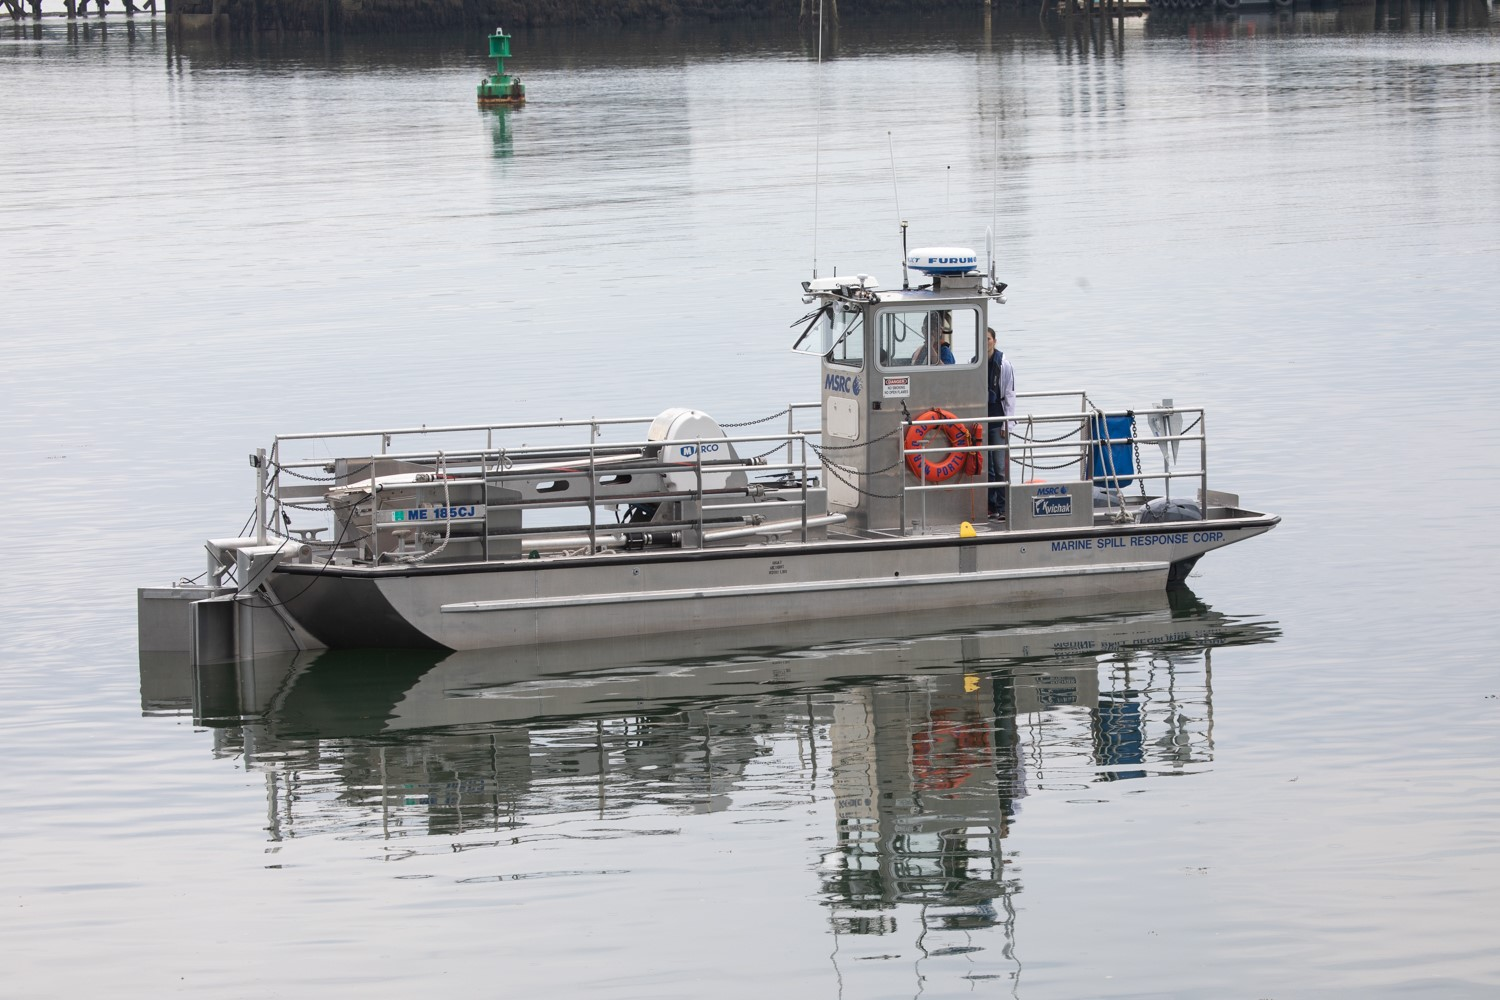 Sea Machines Robotics demonstrates autonomous systems to assist marine oil-spill response